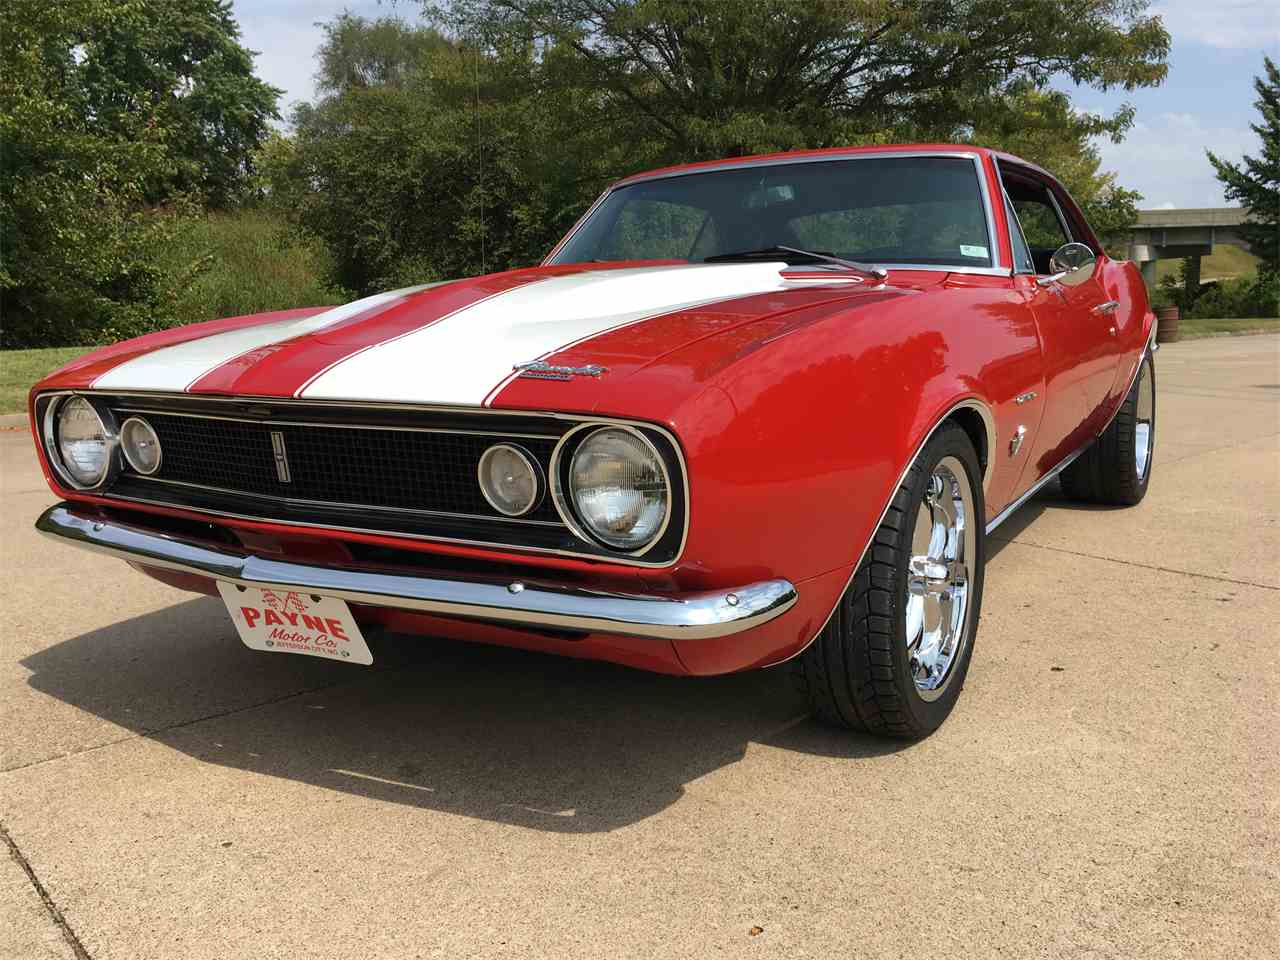 Large Picture of '67 Chevrolet Camaro located in Missouri - $36,000.00 Offered by Payne Motor Co. - LUOH